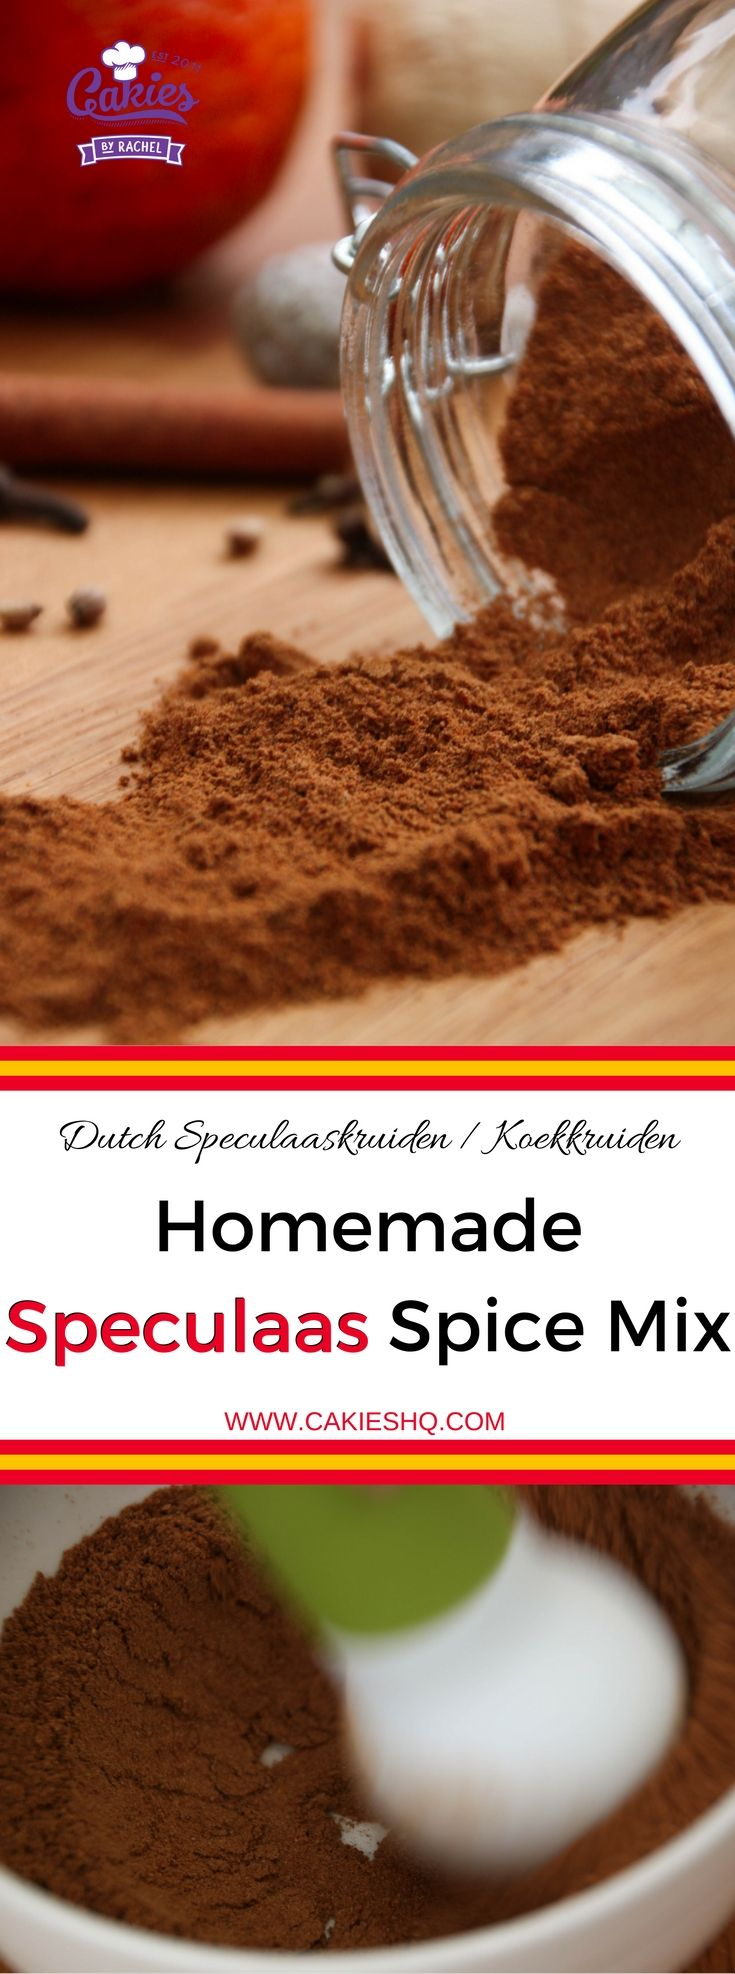 Speculaas Spice Mix is often used in Dutch cuisine. Speculaas is also known as Spekulatius, Speculoos and Spekolaus. Recipe | Sinterklaas.